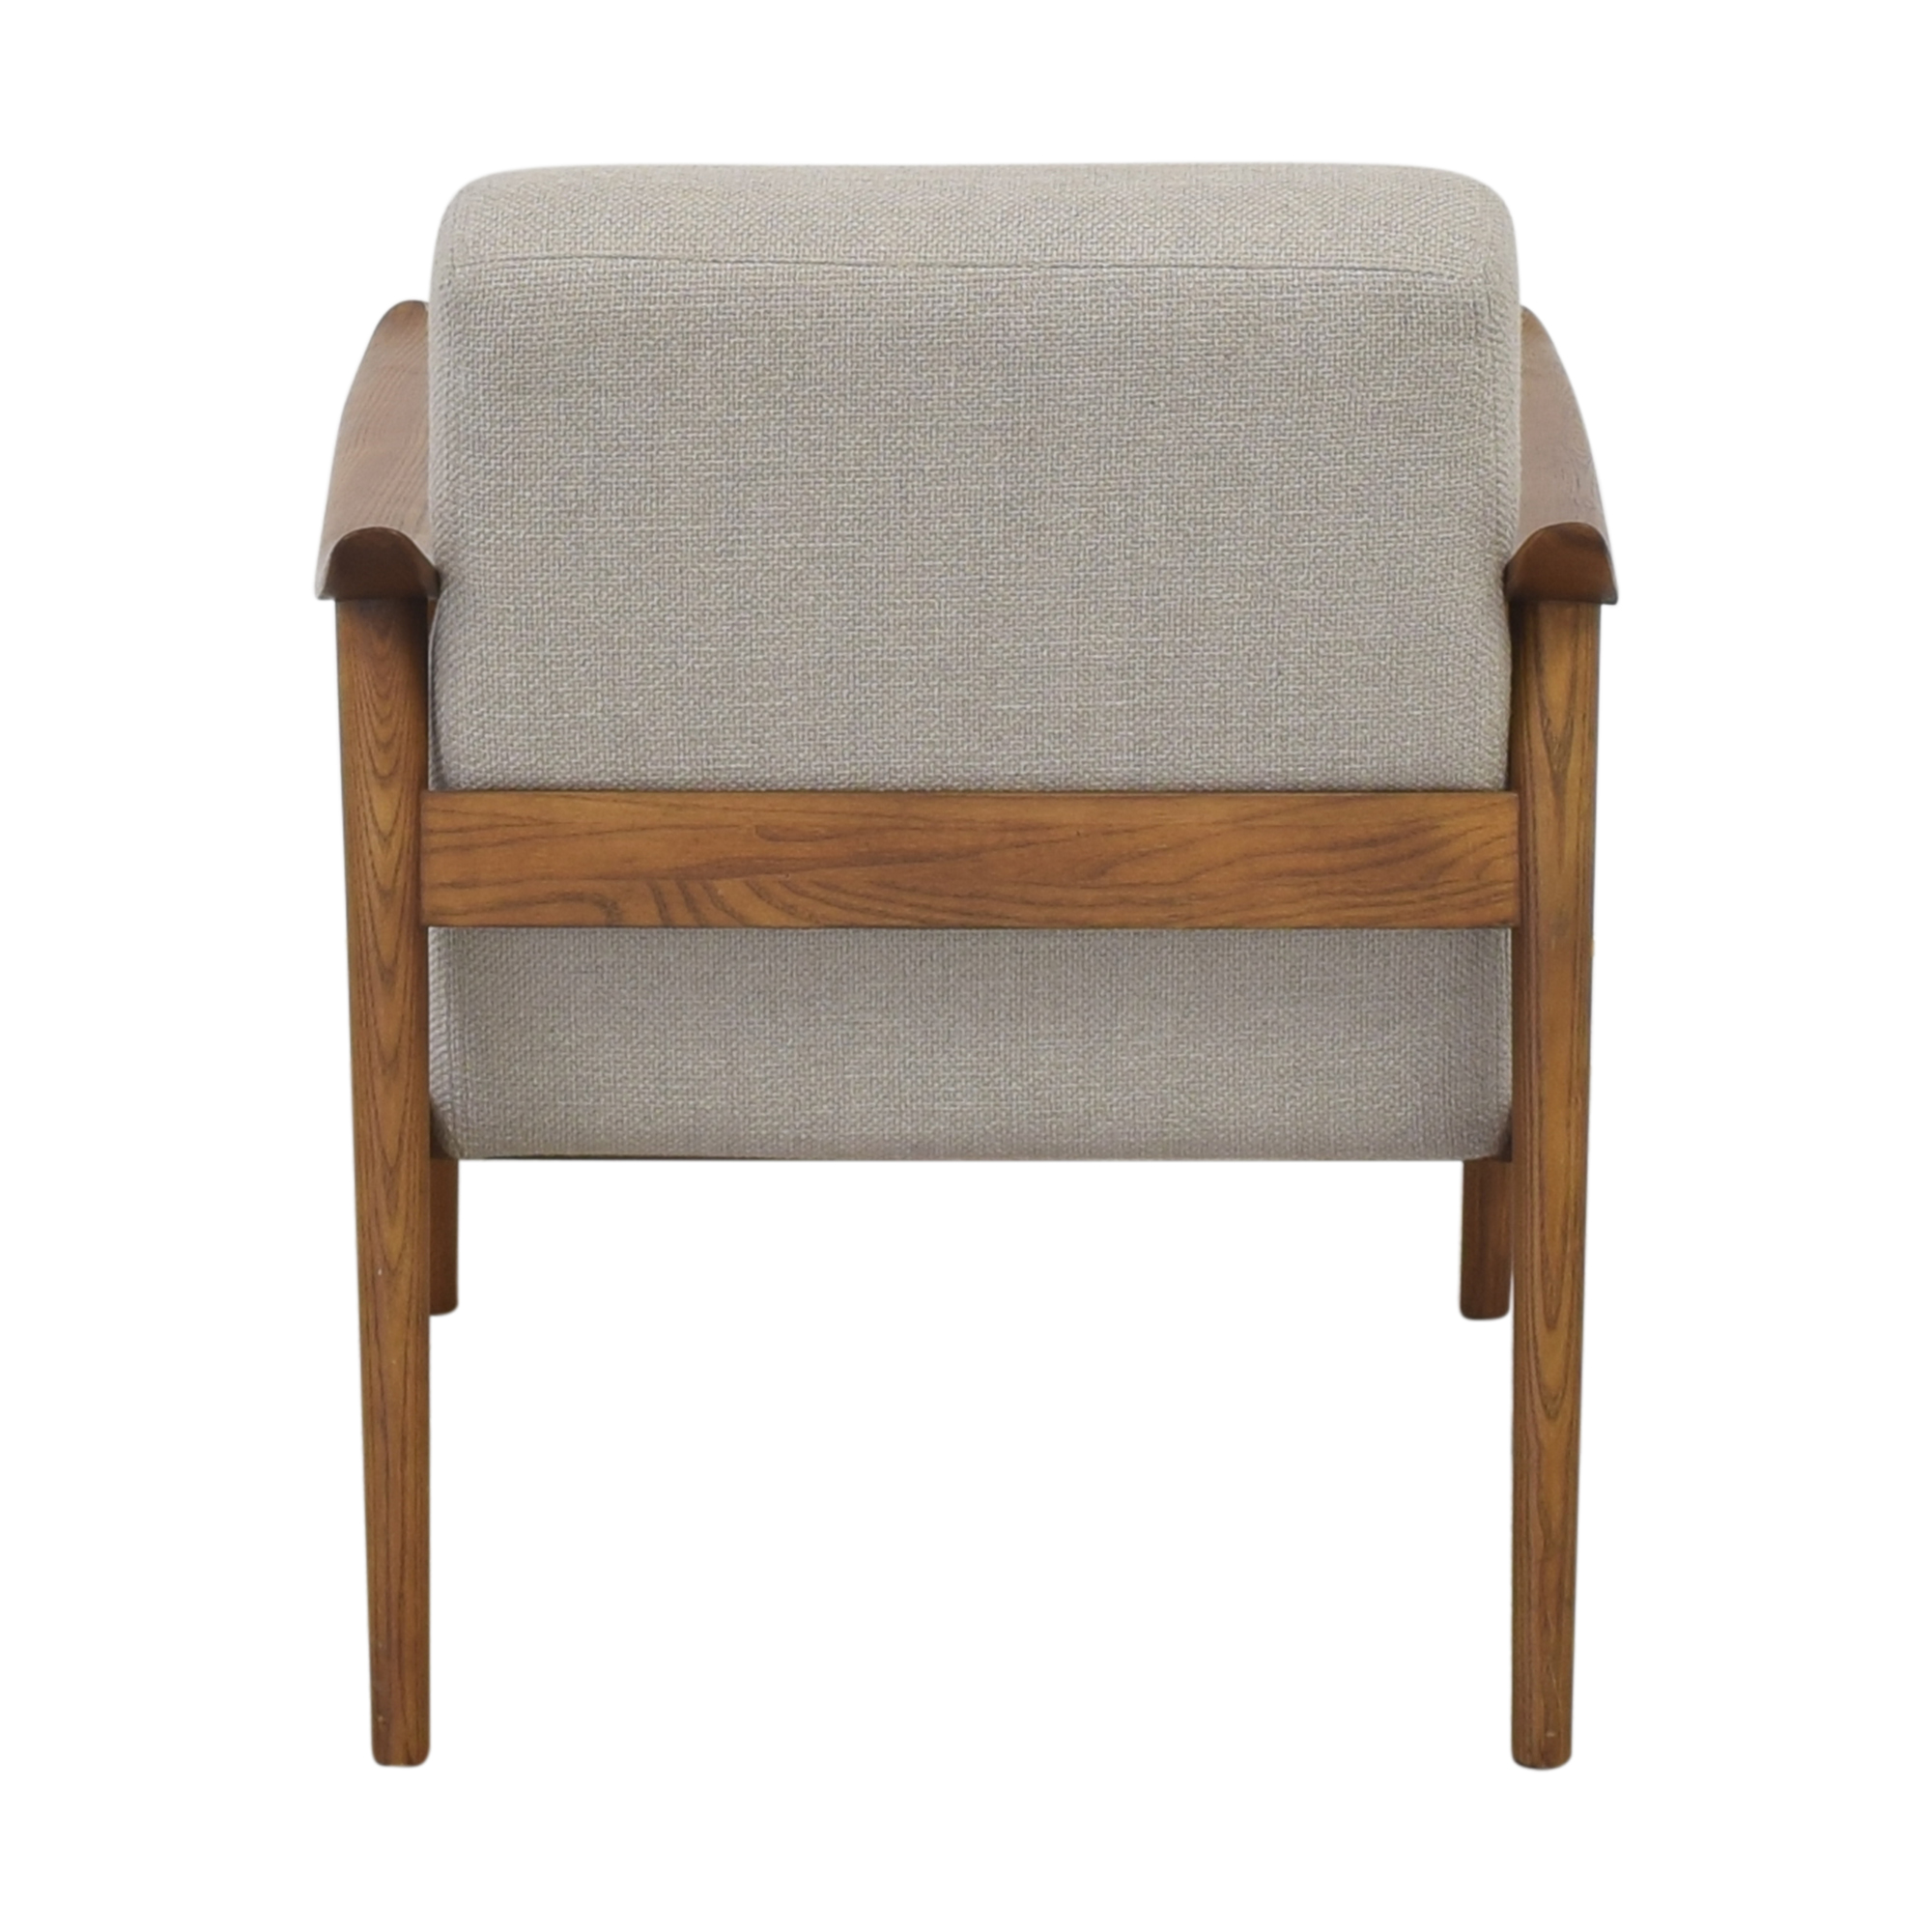 West Elm West Elm Mid-Century Show Wood Chair Accent Chairs